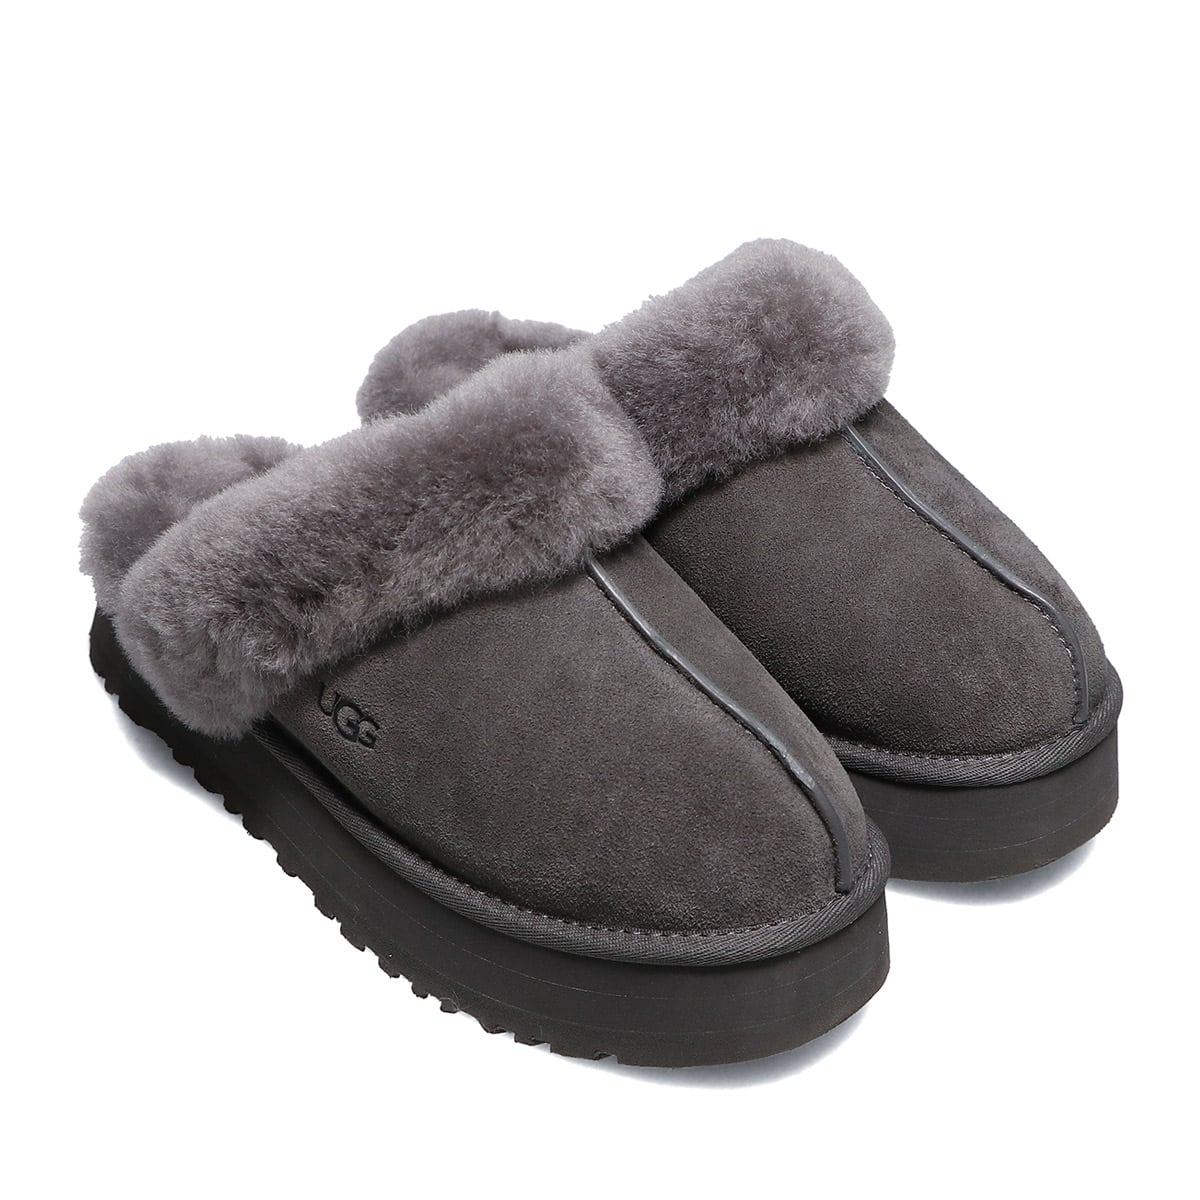 UGG Disquette CHARCOAL 21FW-I_photo_large